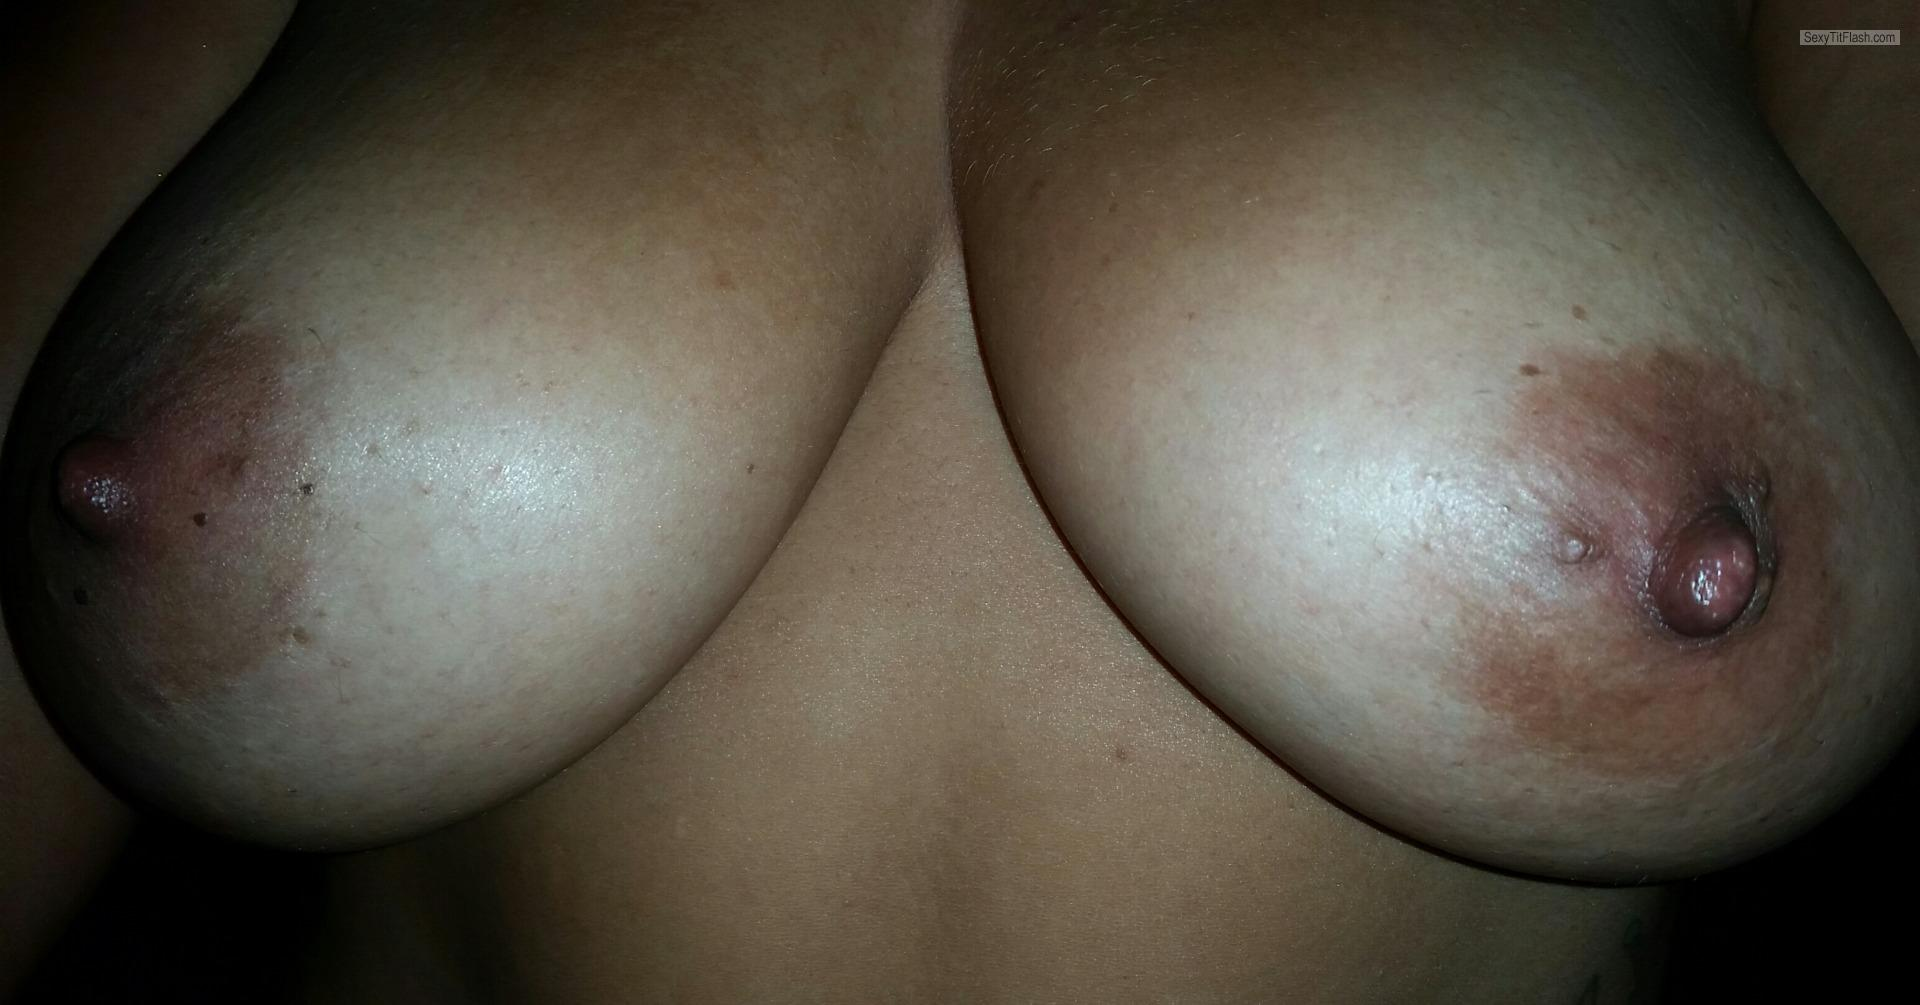 Tit Flash: My Big Tits - Mark from United States